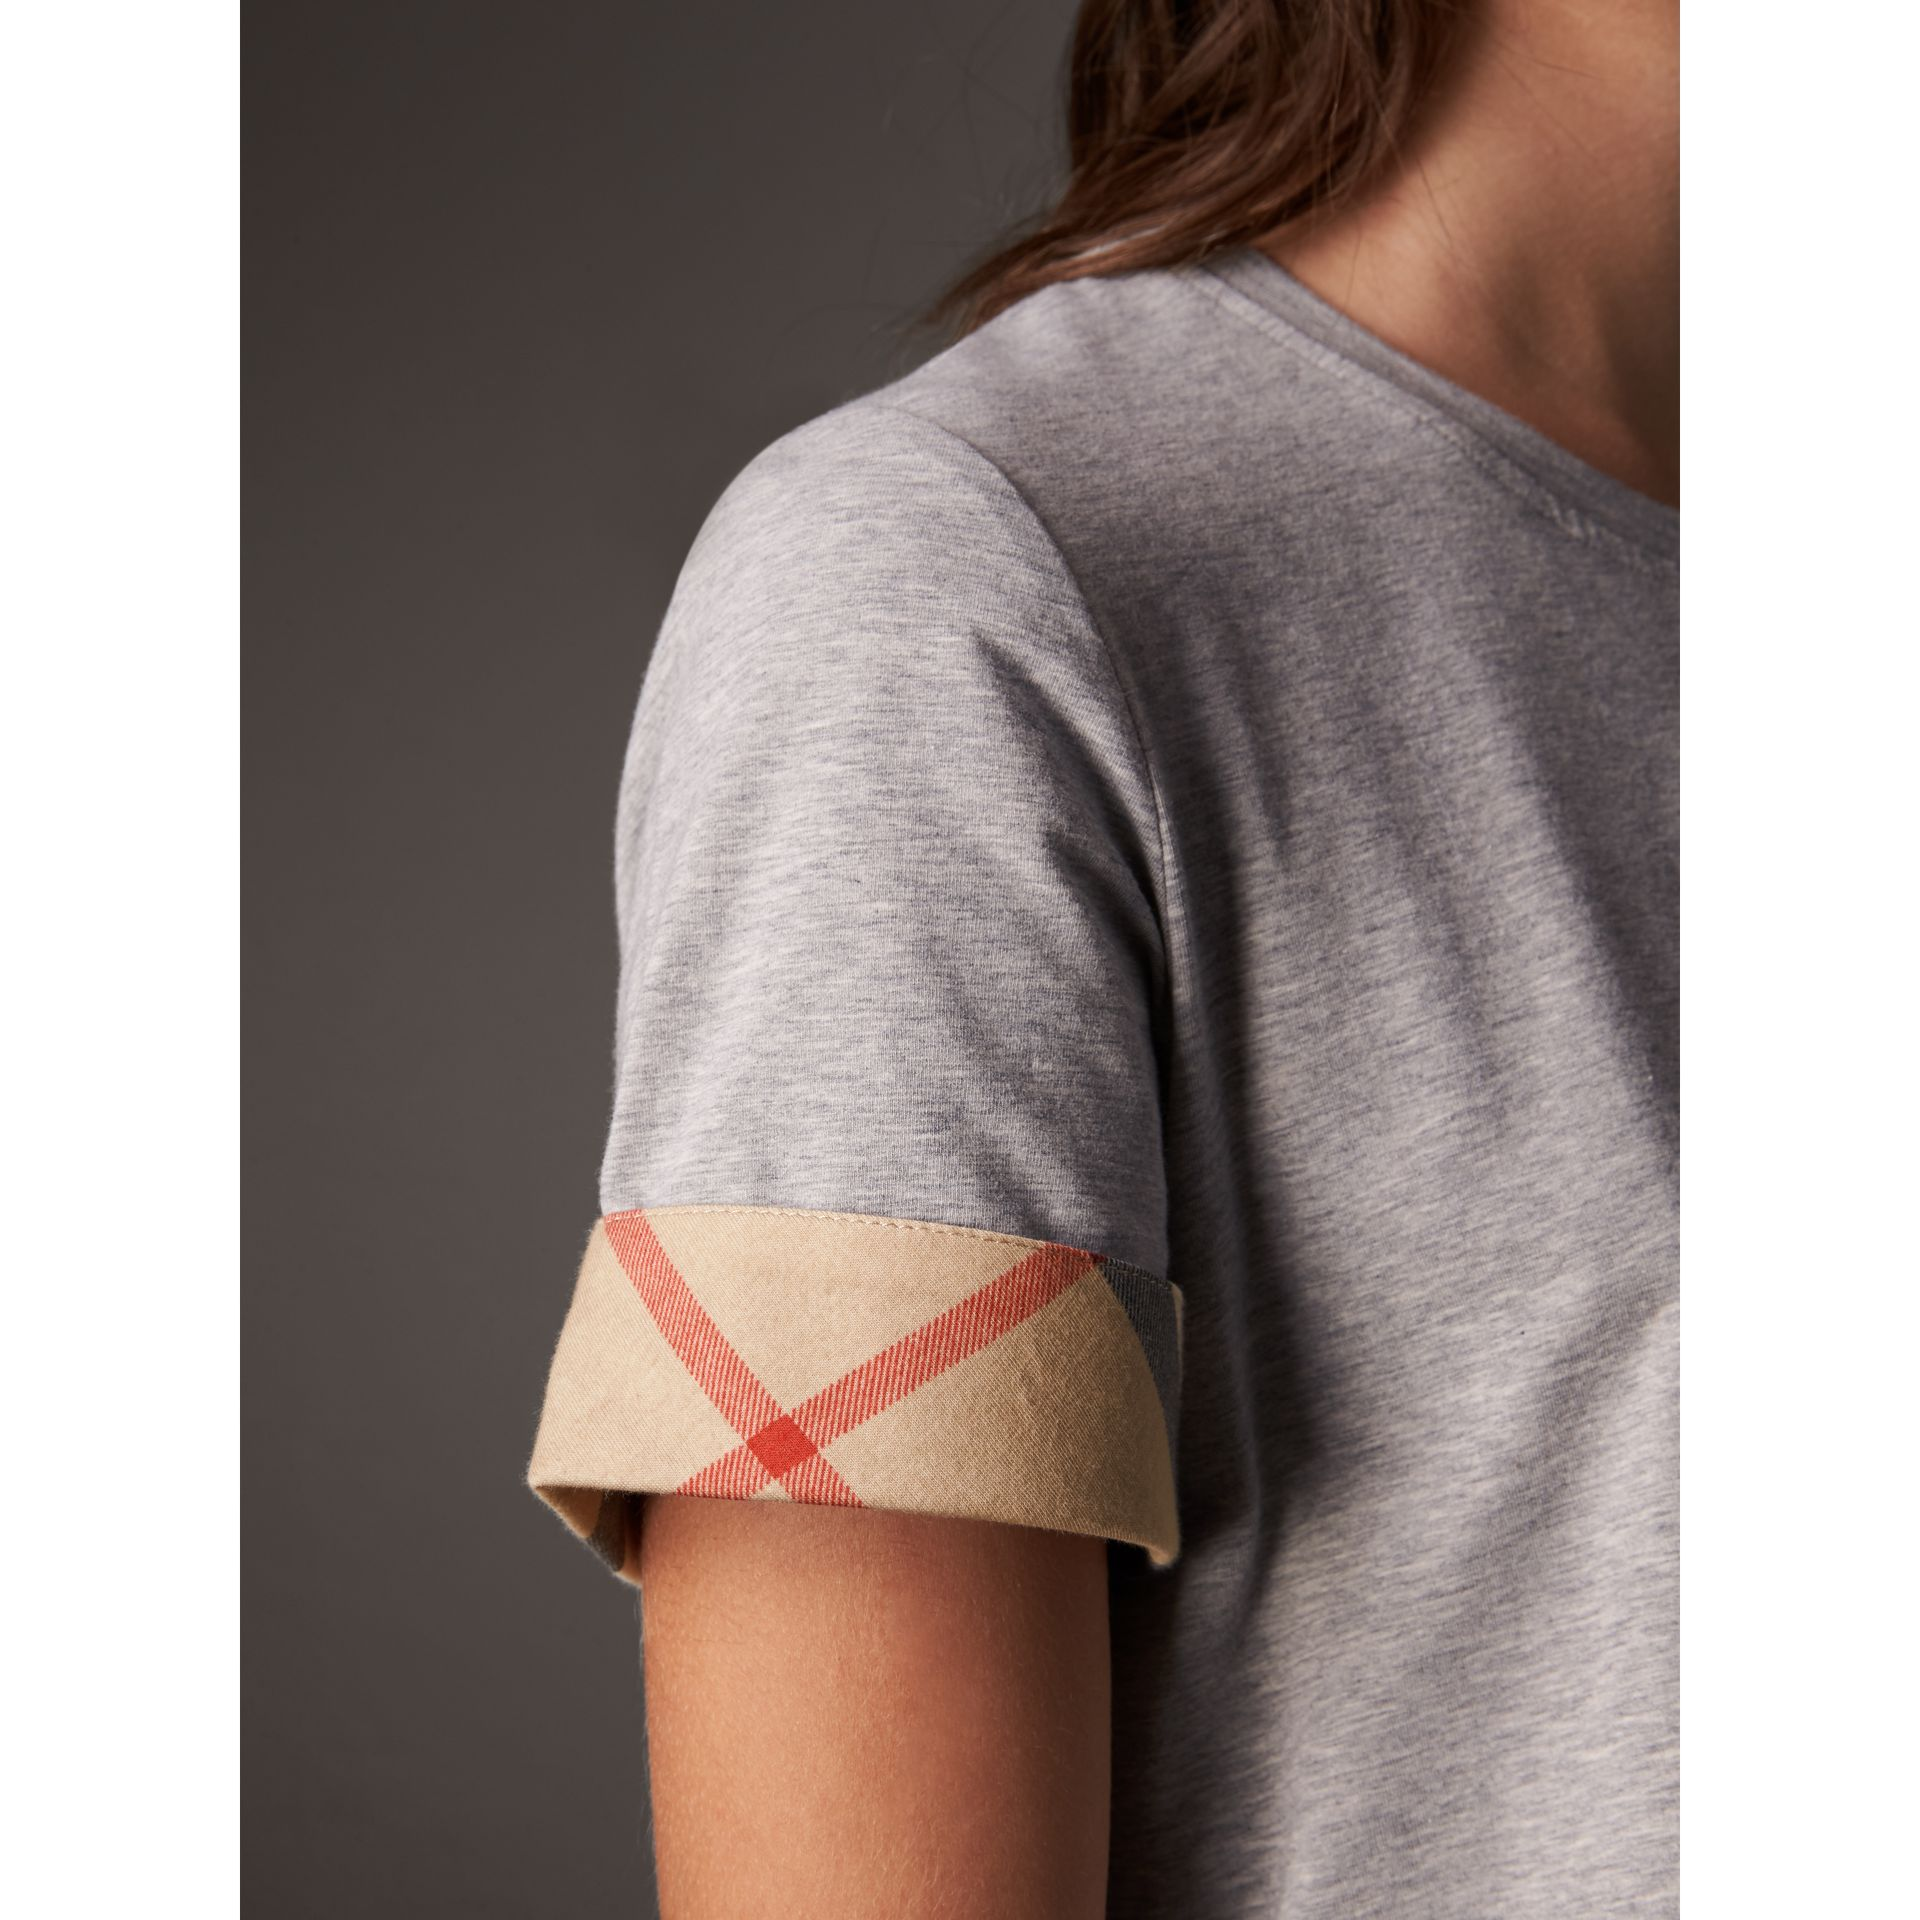 Check Cuff Stretch Cotton T-Shirt in Pale Grey Melange - Women | Burberry Canada - gallery image 5